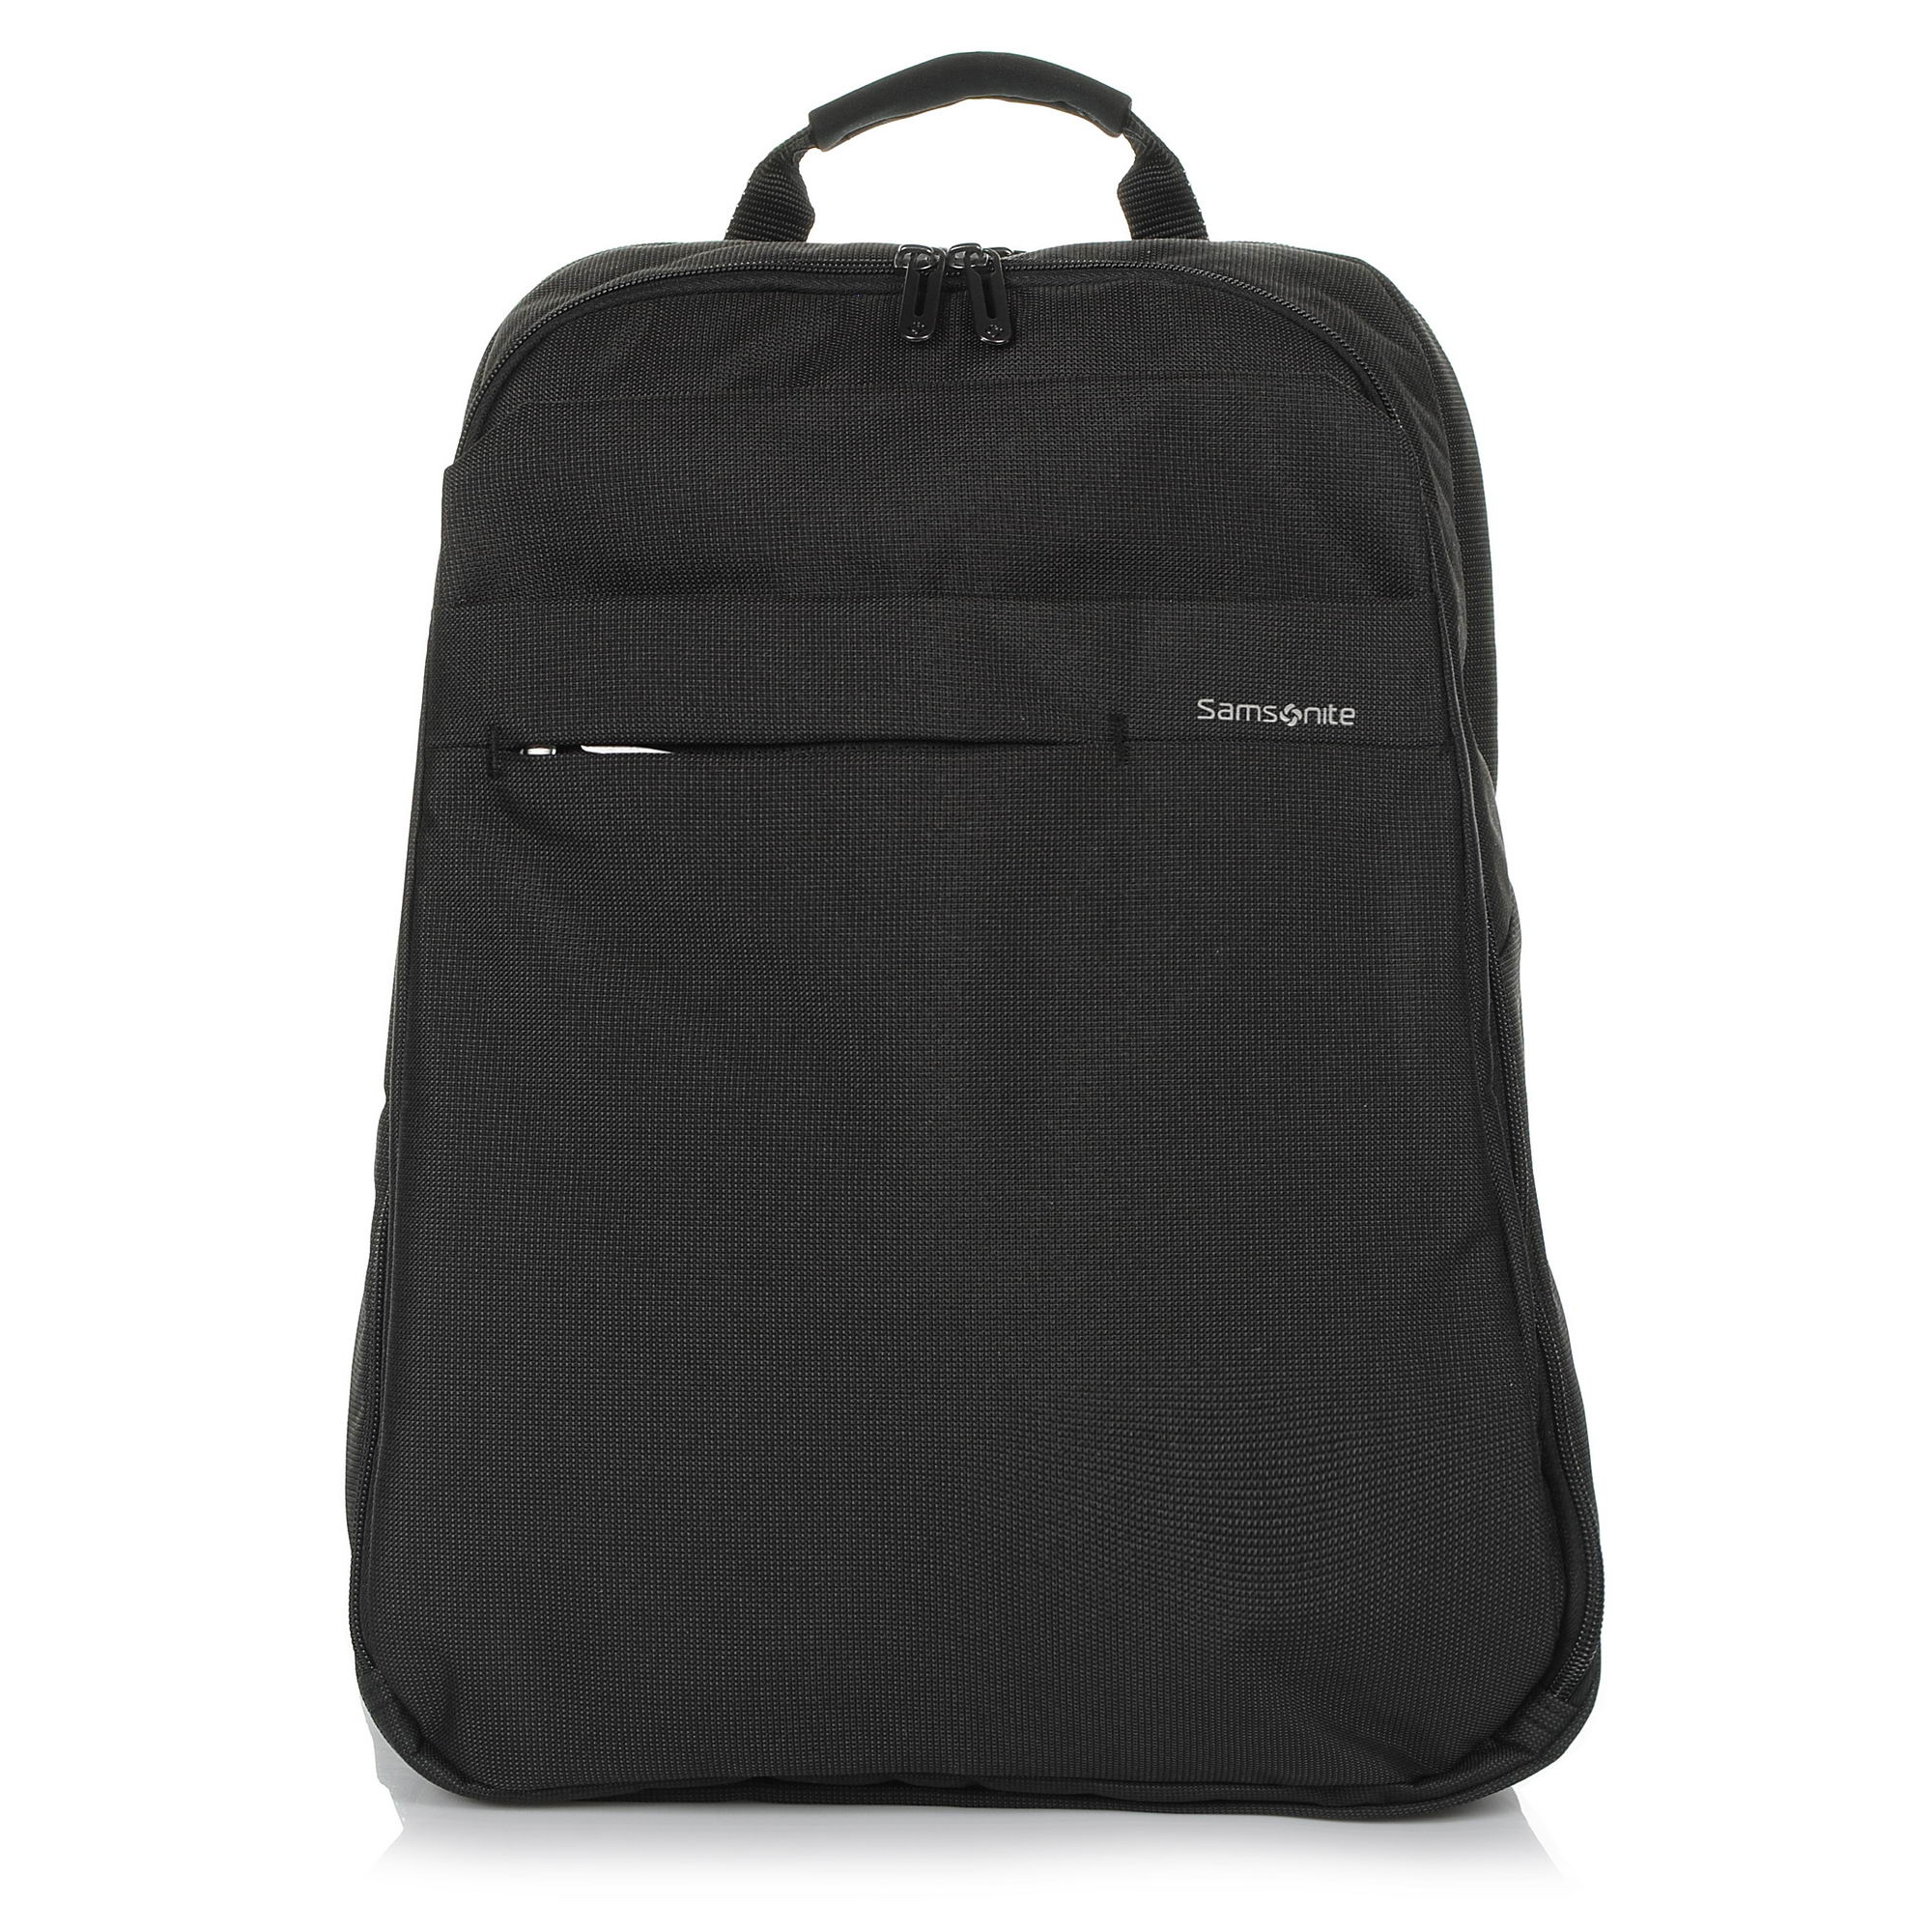 febabe5e8b Σακίδιο Πλάτης Samsonite Network 2 Laptop Backpack 15  -16   51892 ...